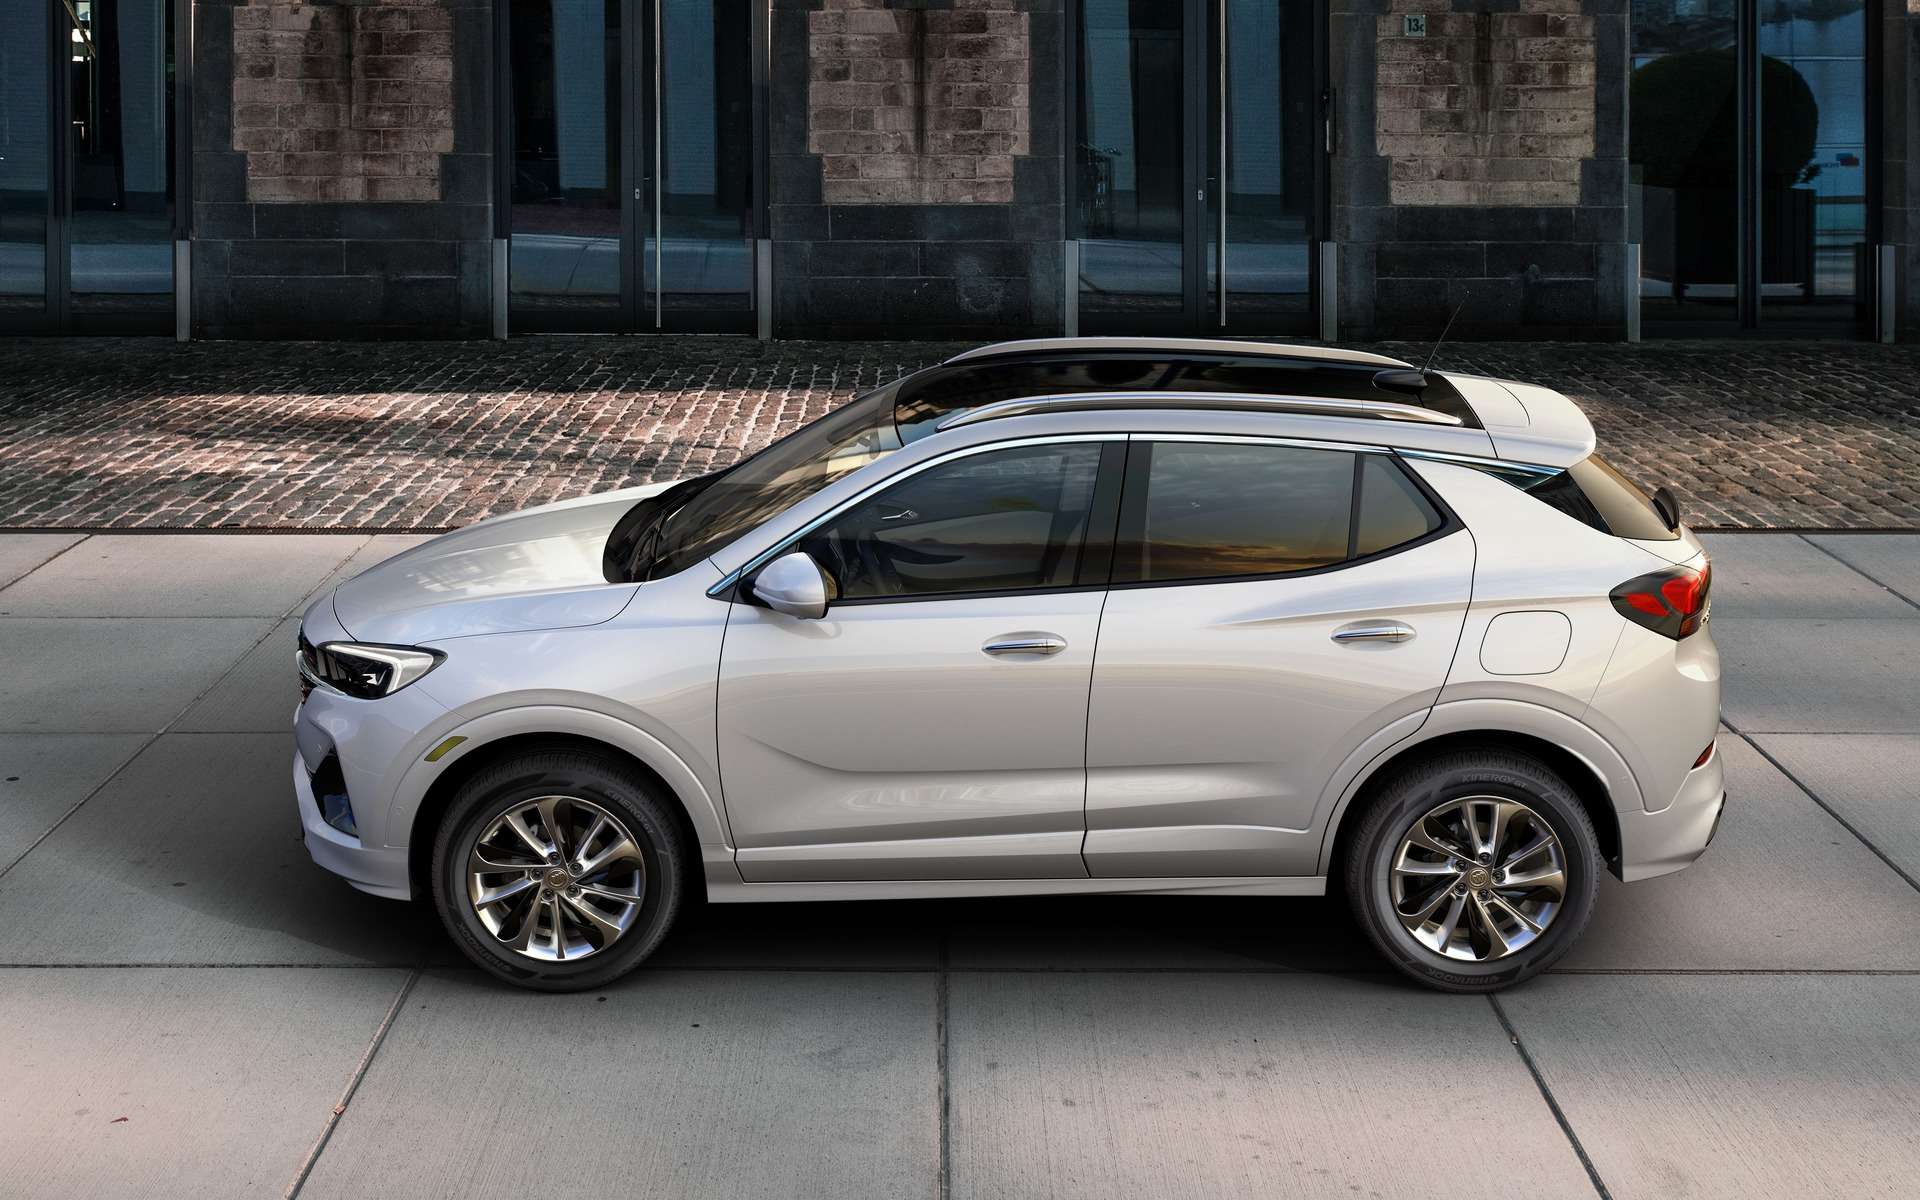 Buick Encore Gx To Offer A Pair Of Three-Cylinder Engines New 2021 Buick Encore Msrp, Models, Manual